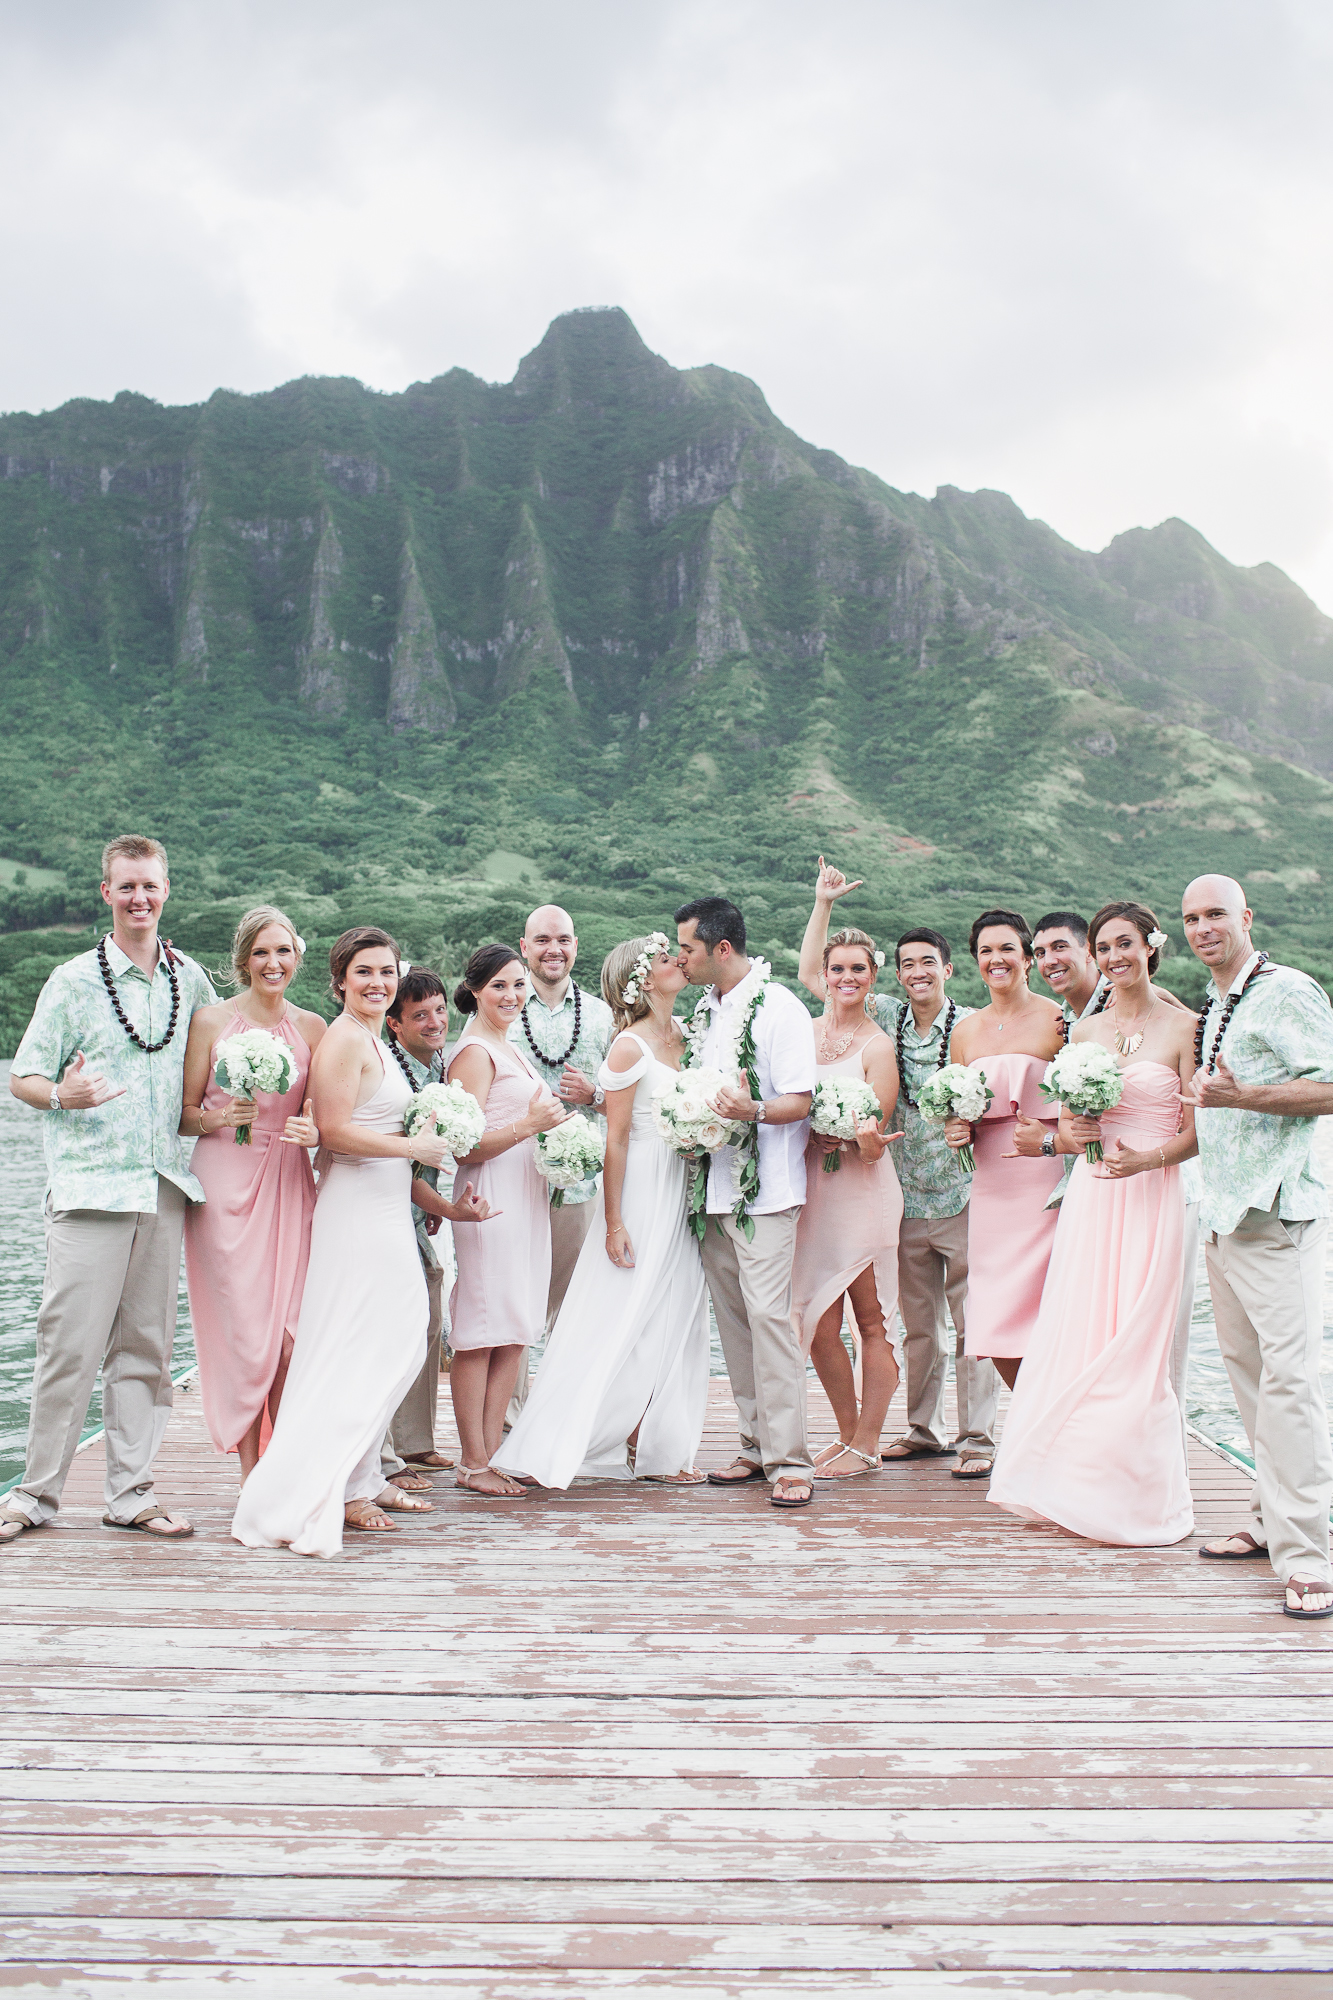 Of course, while we shot this destination wedding, my husband and I took FULL advantage of Hawaii and took in all that the beautiful aina had to offer.